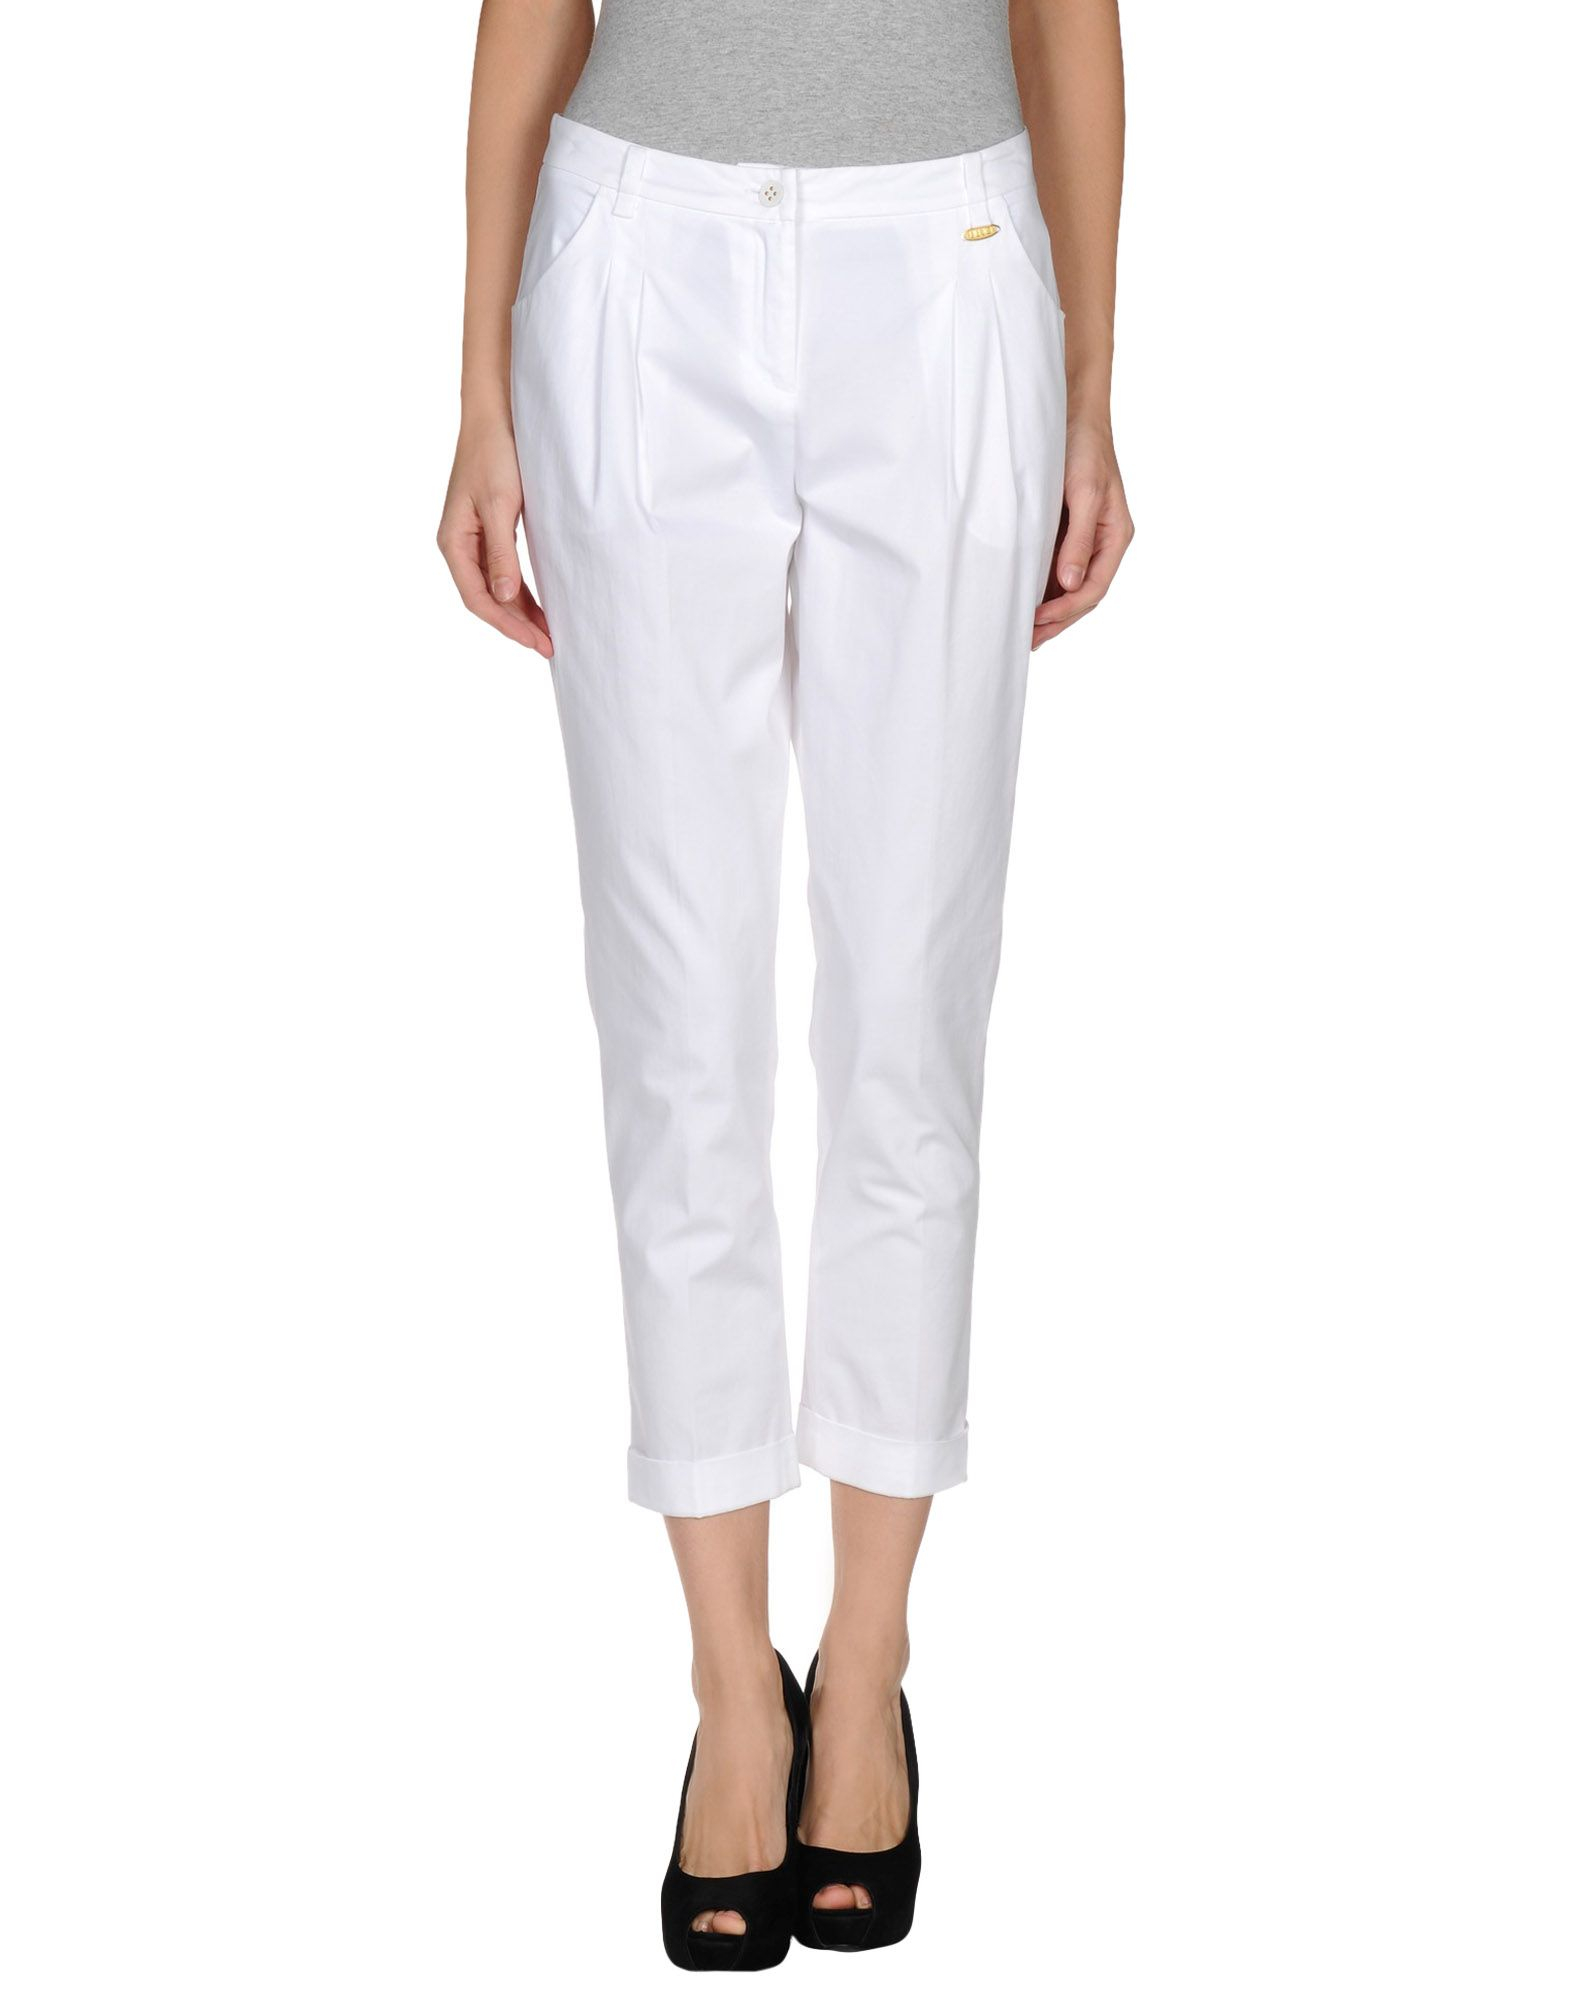 Off-White. See more colors. Brand. ZANZEA. All Clearance. Barco. NrG by Barco. See more brands. Product Category. White Wide Leg Pants. Store availability. Search your store by entering zip code or city, state. Go. Sort. ZANZEA New Women Chiffon High Waist Palazzo Yaga Pants Wide Leg Loose Casual Long Trousers. Product Image.